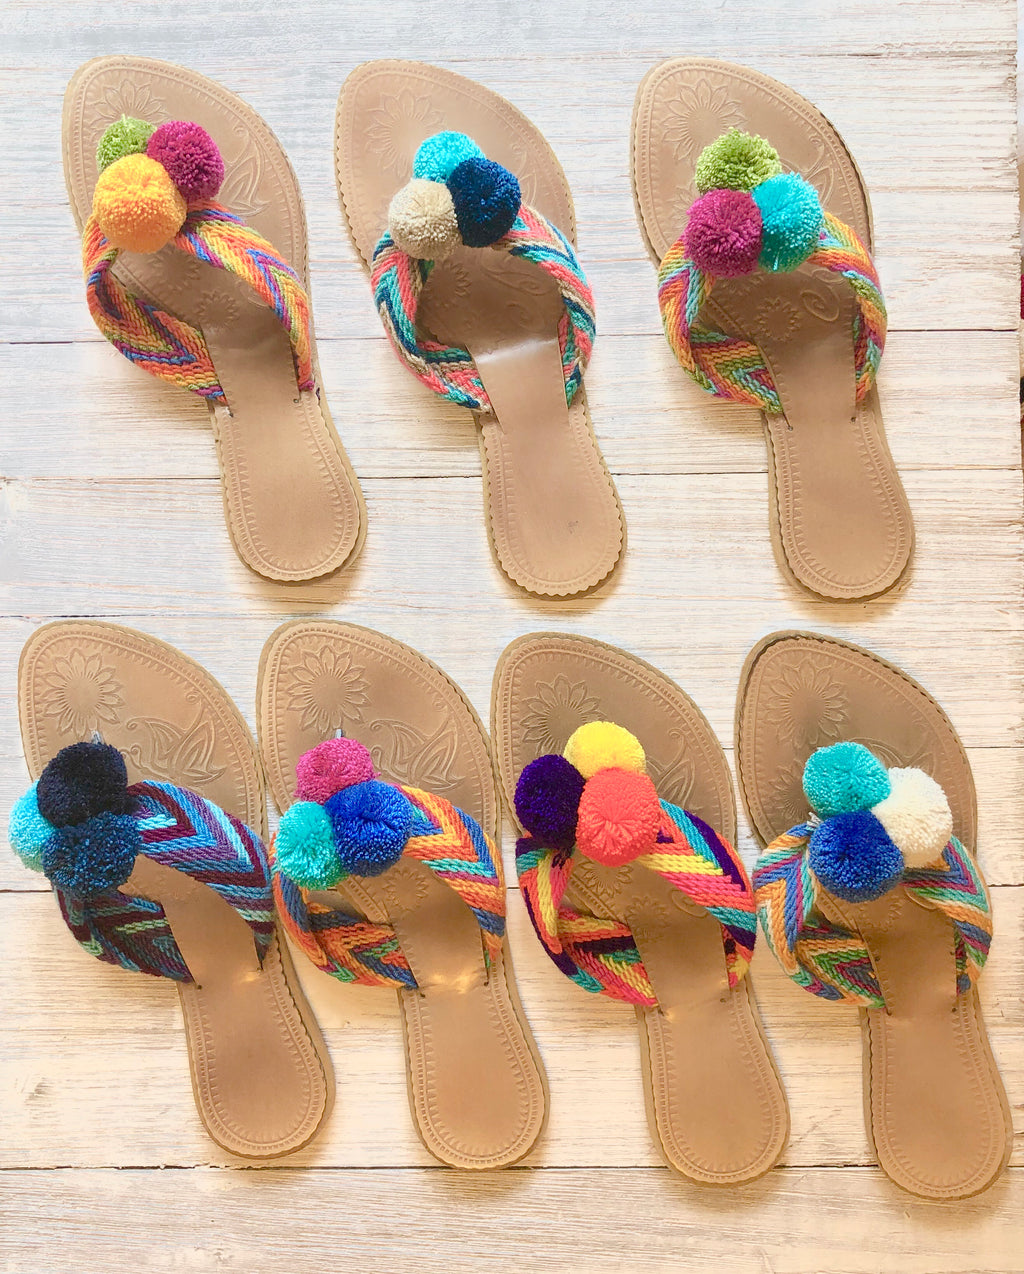 Colorful Pom Pom Sandals-Summer Flip-Flops. SWP